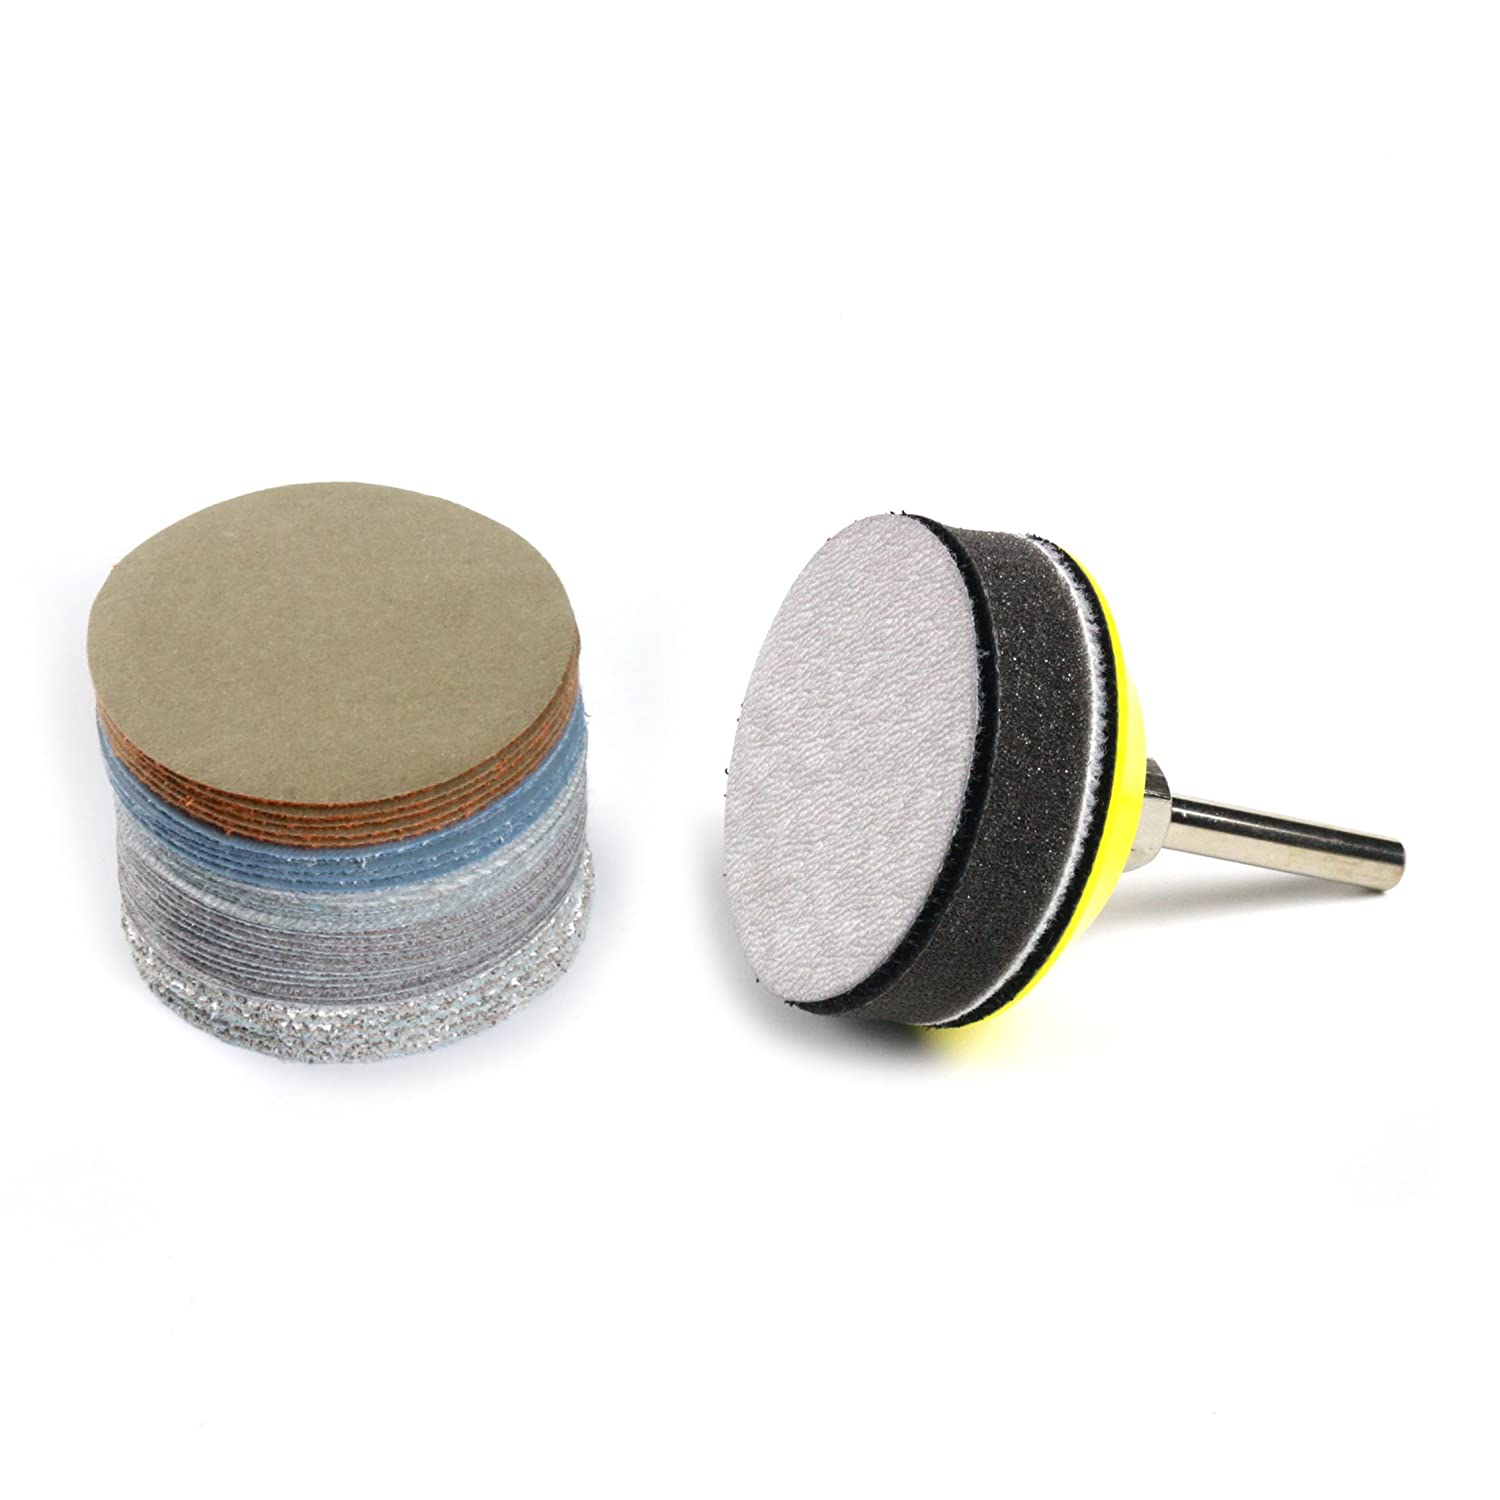 e-Rookie 2-Inch Multiple Grits Aluminum Oxide Wet/Dry Hook and Loop Sanding Discs with a 6mm Shank Backing Pad + Soft Sponge Buffering Pad, 5-pieces Each of 60, 240, 600, 1000, 5000, and 10000 Grits Jinhua Chuangda Network Technology Co. Ltd